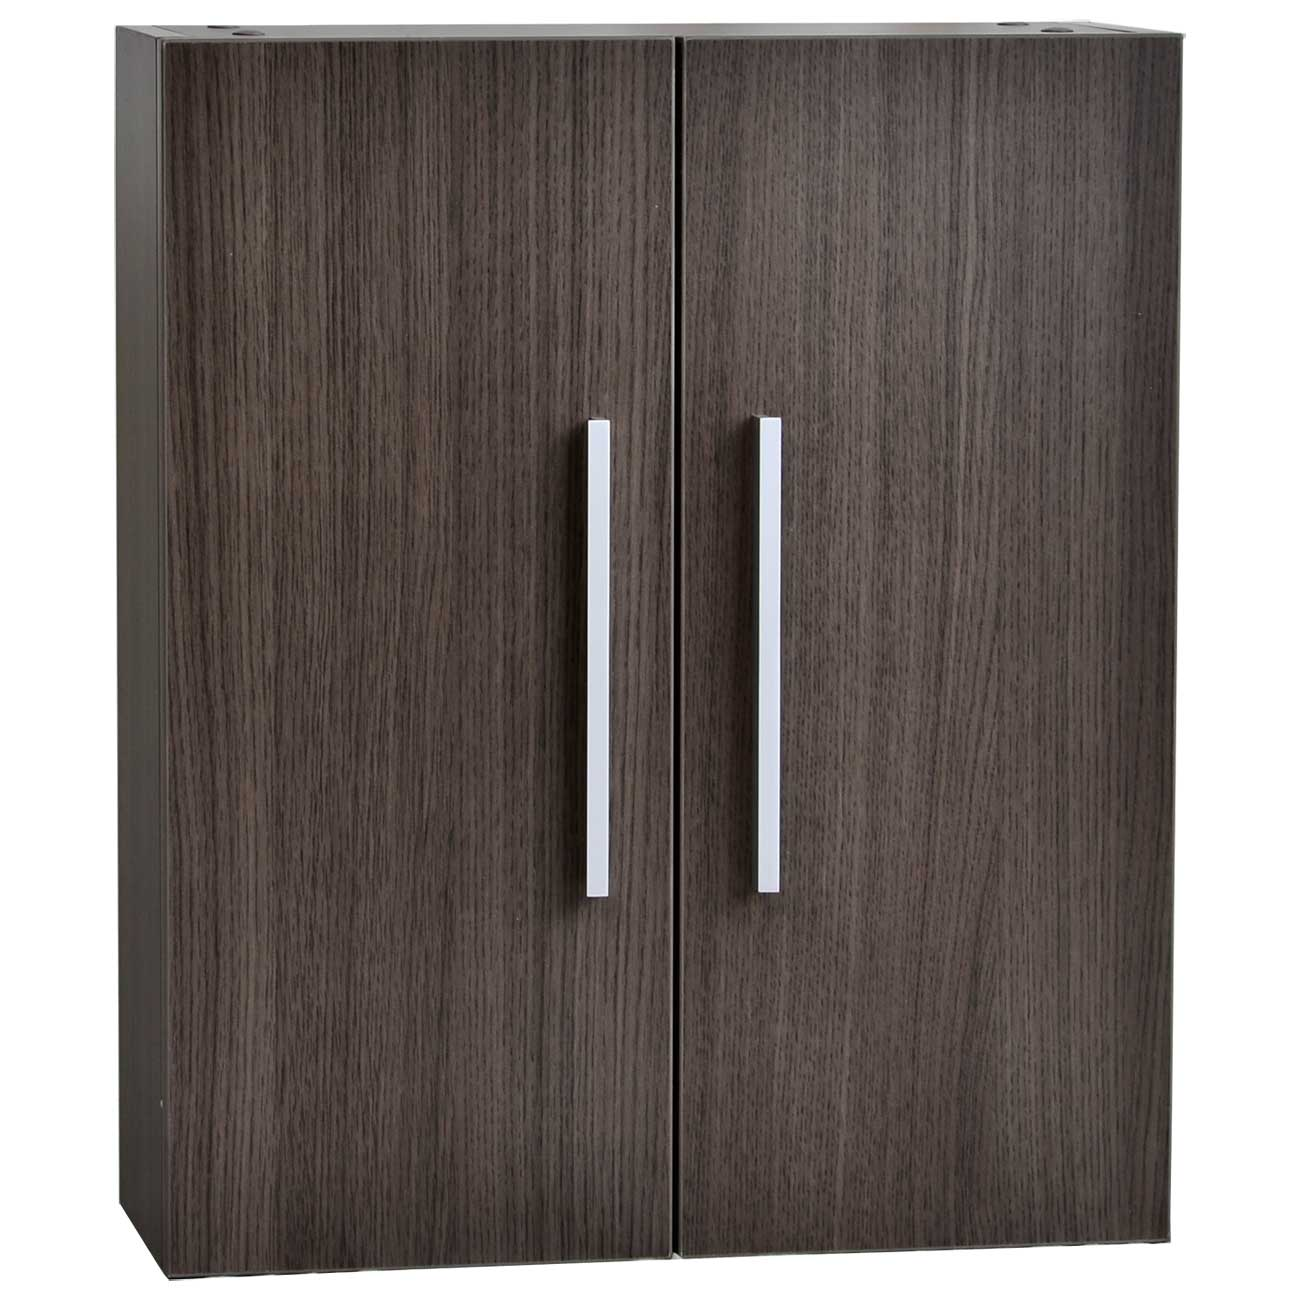 wall cabinet grey oak 205 in w x 244 in h tnt520scgo